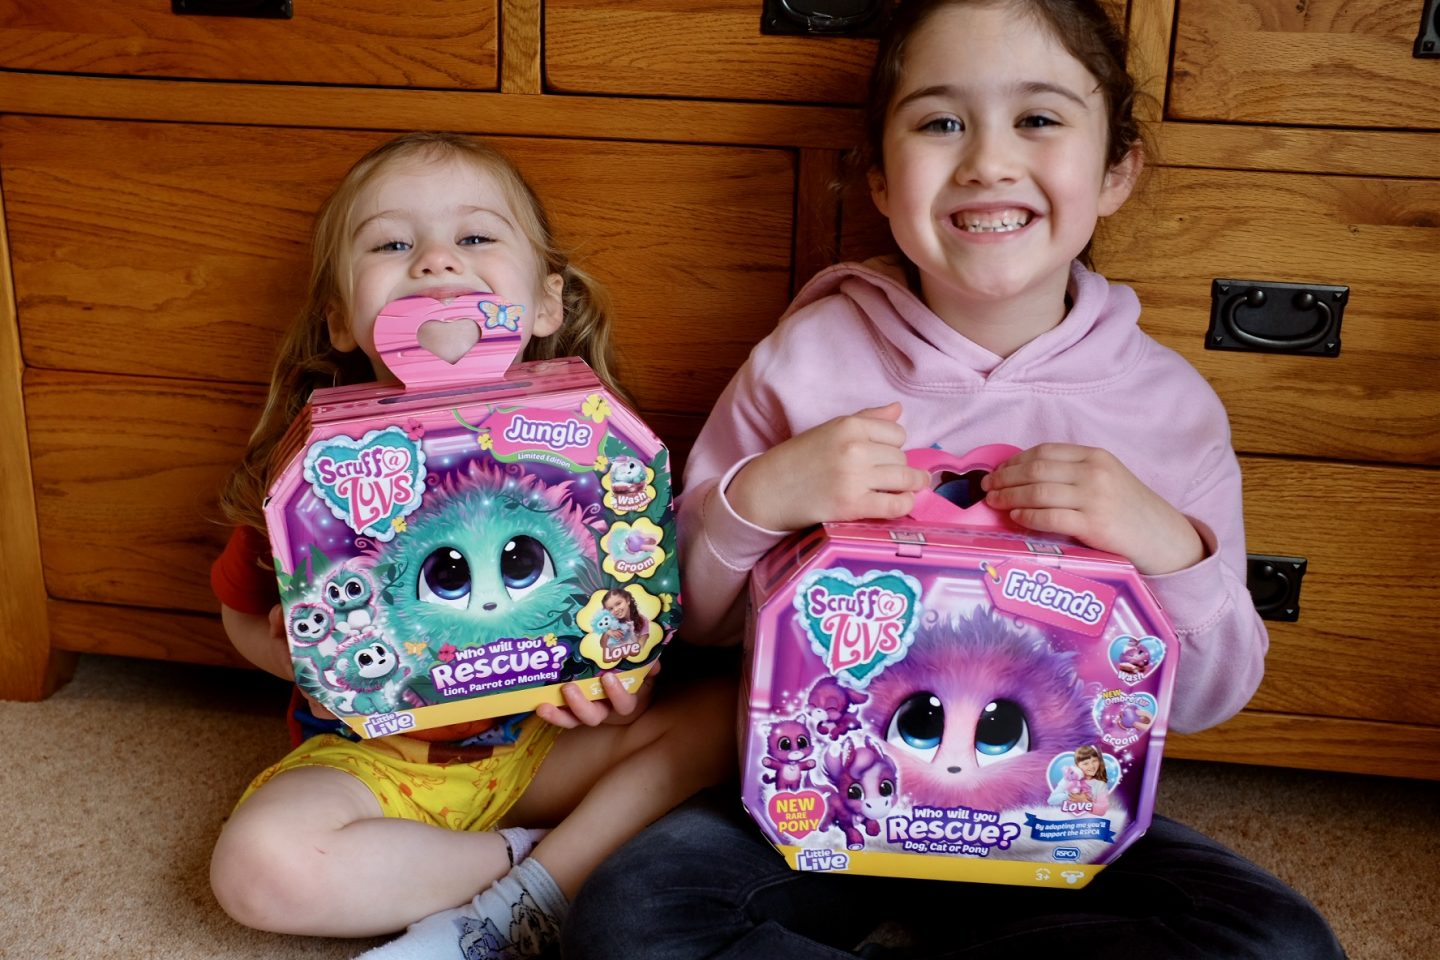 Scruff-a-luvs Friends, Jungle and Spring Babies *NEW* –  REVIEW | AD